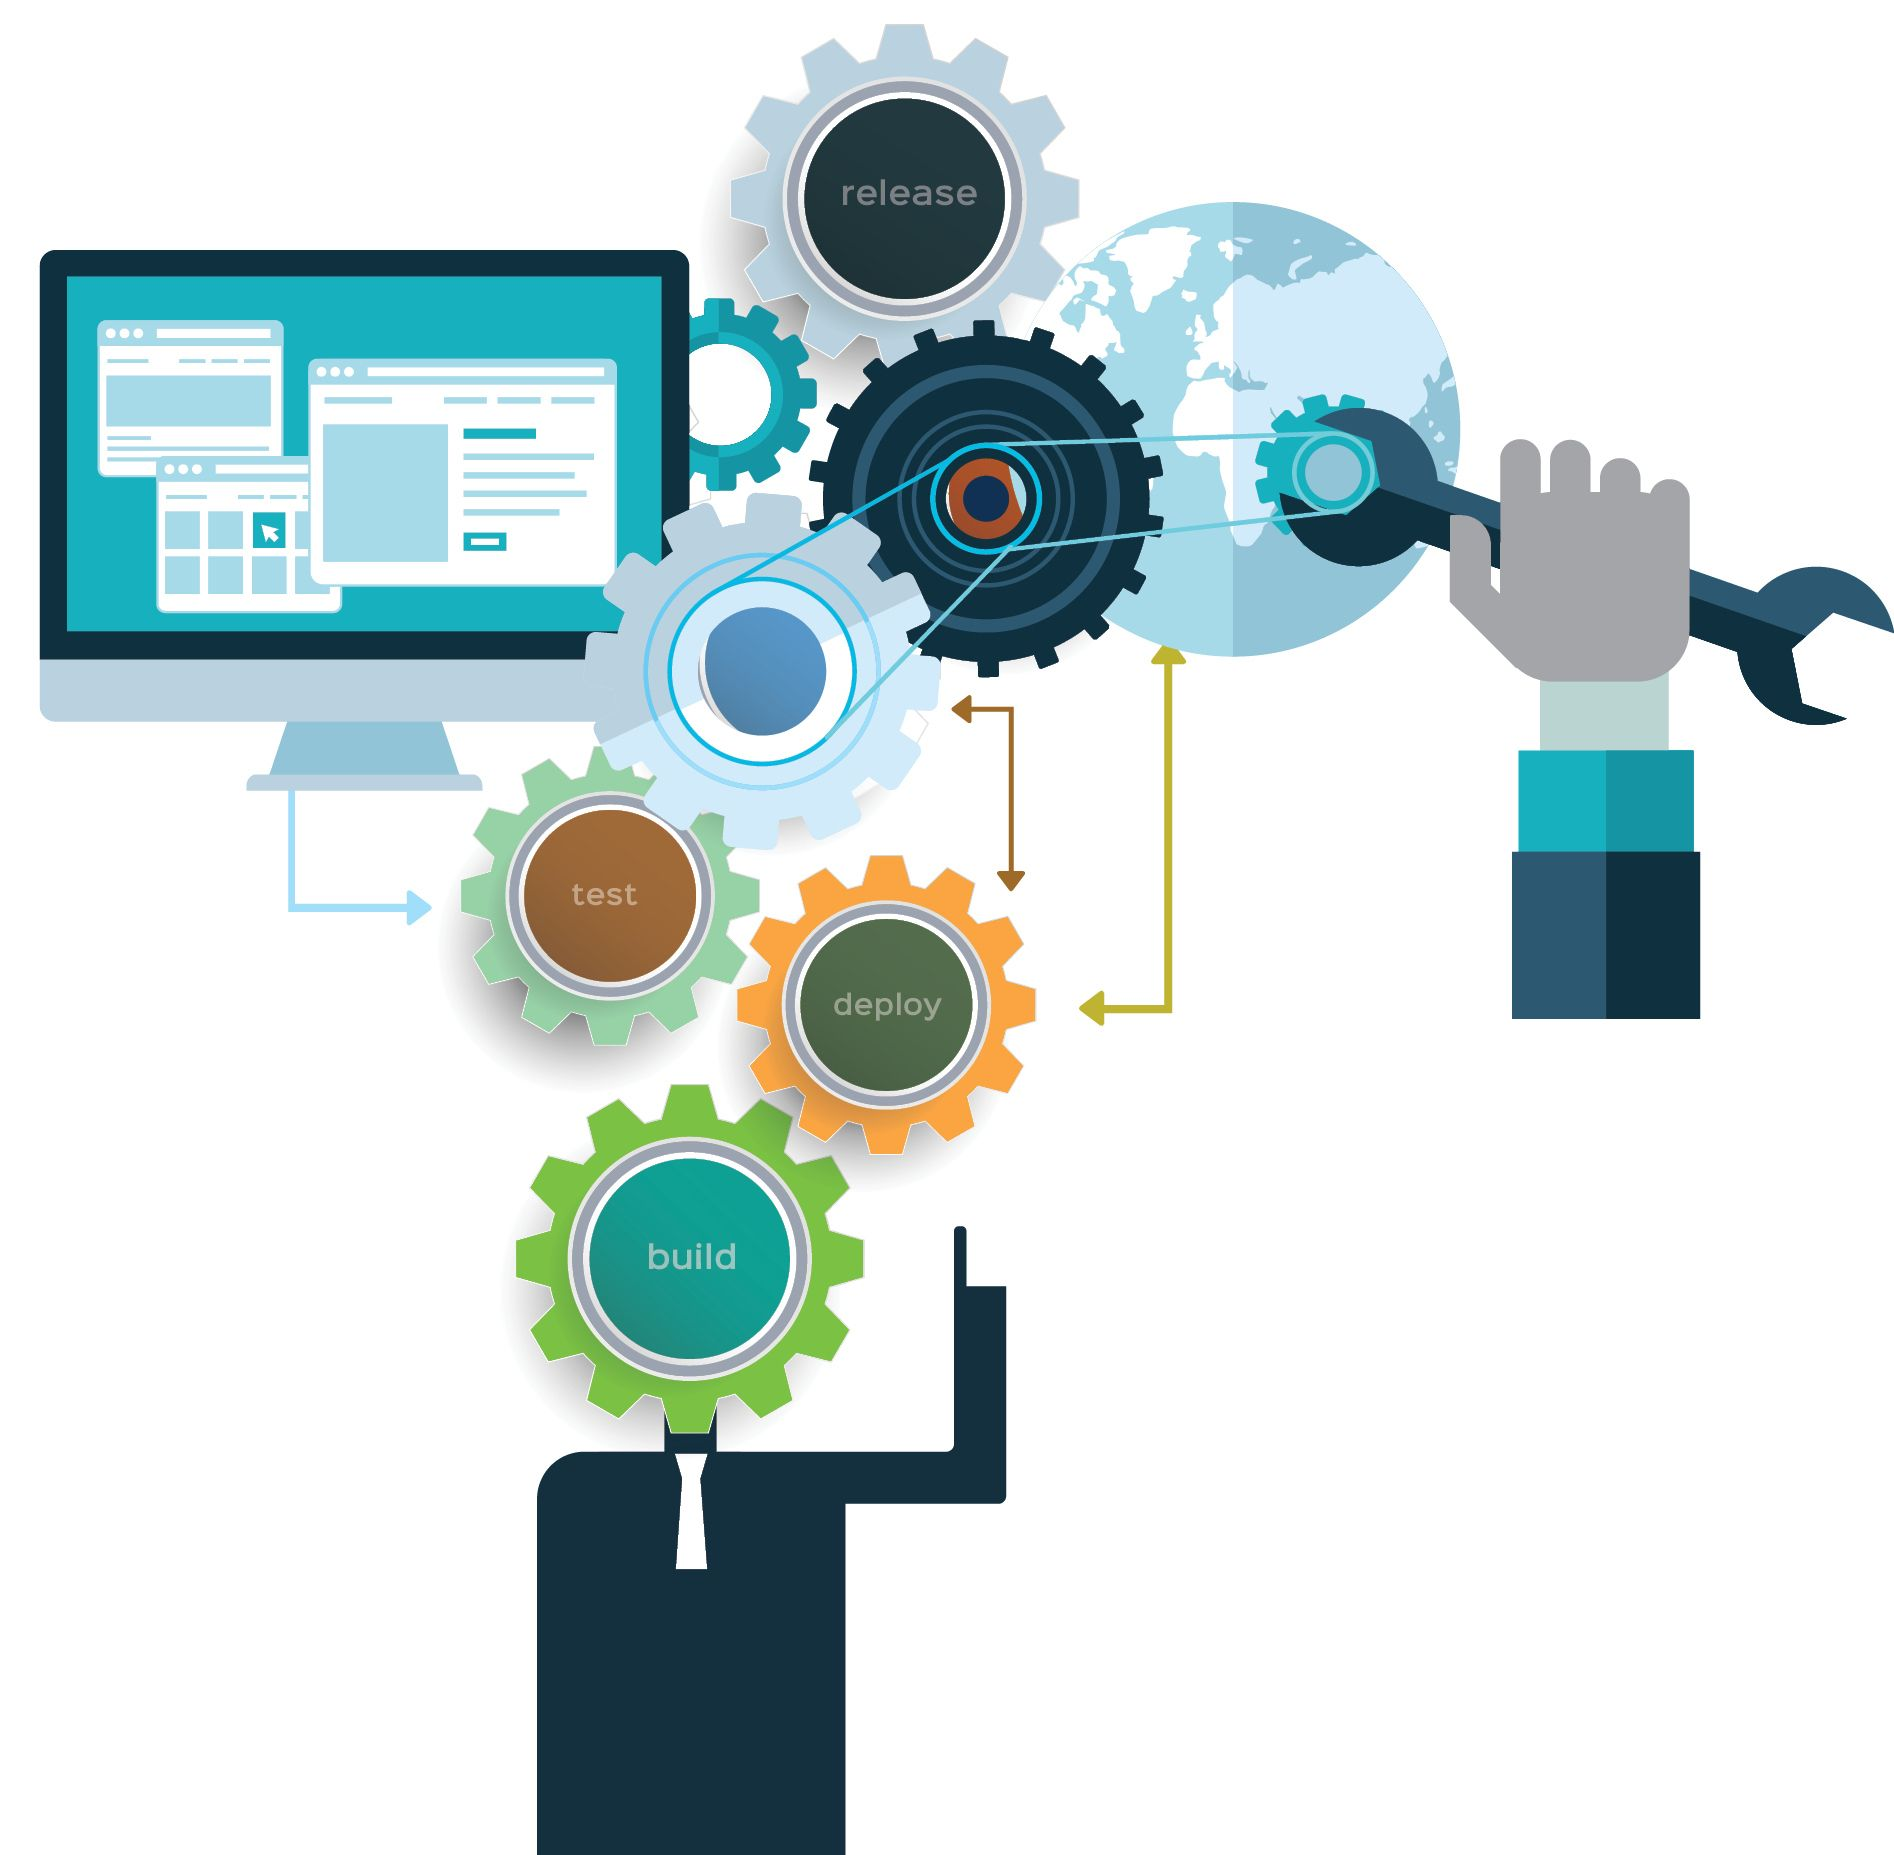 Benefits And Challenges Of Cloud Based Testing Must Read Cloud Based Cloud Infrastructure System Testing